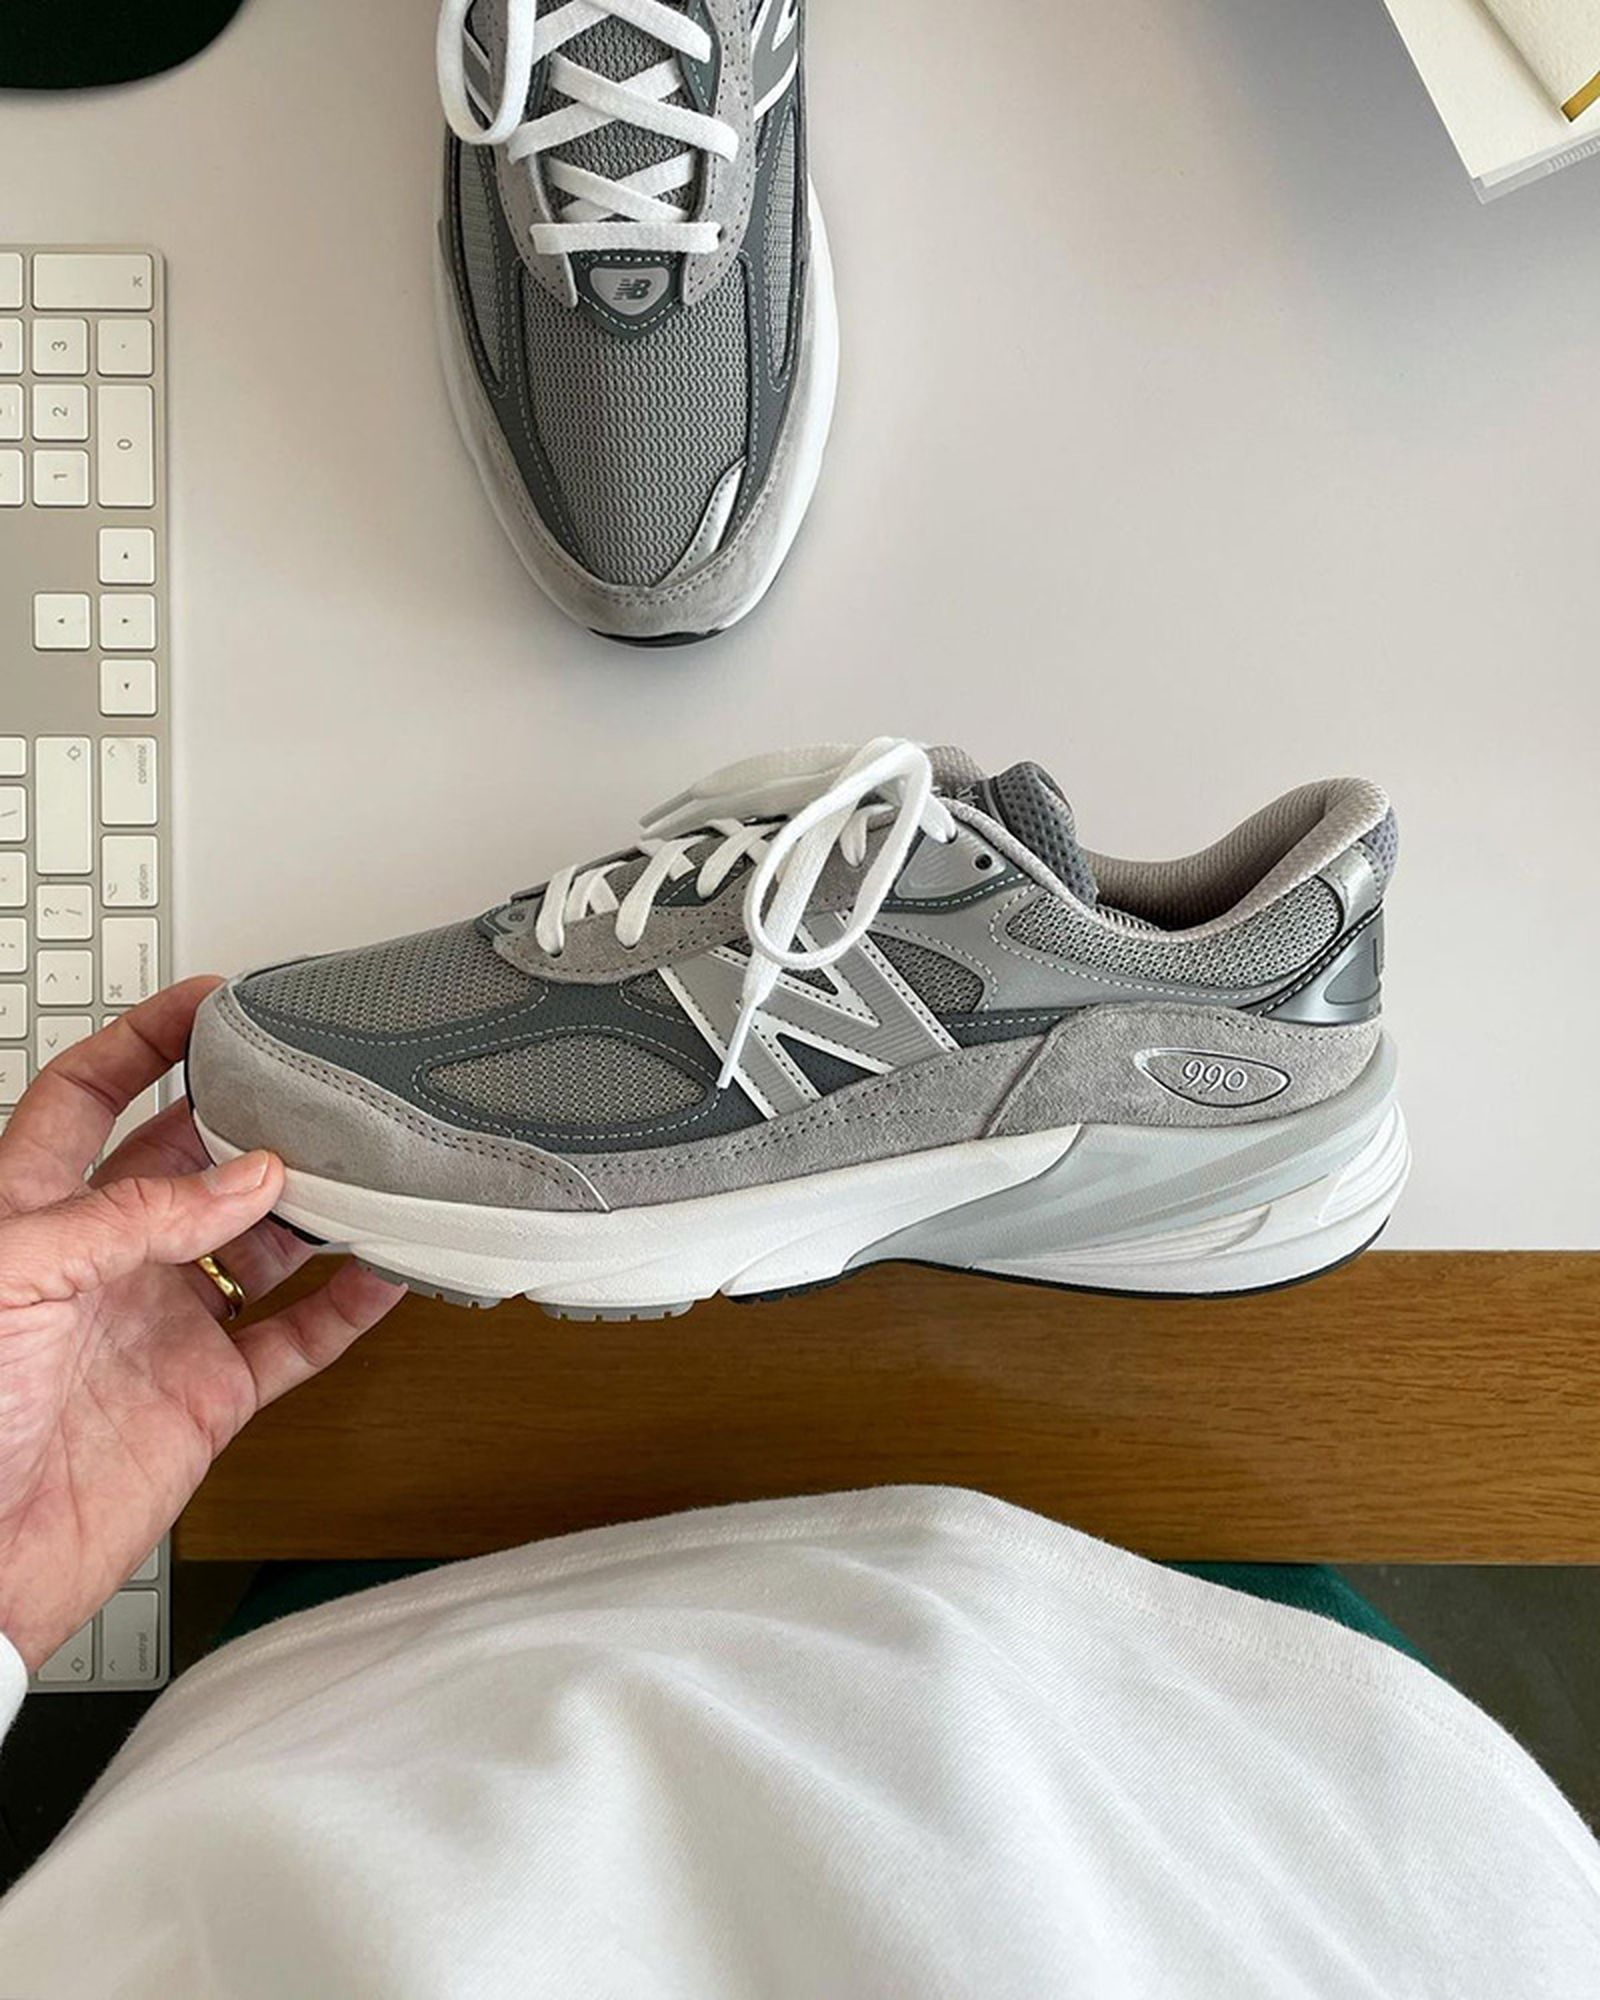 new-balance-990v6-first-look-02